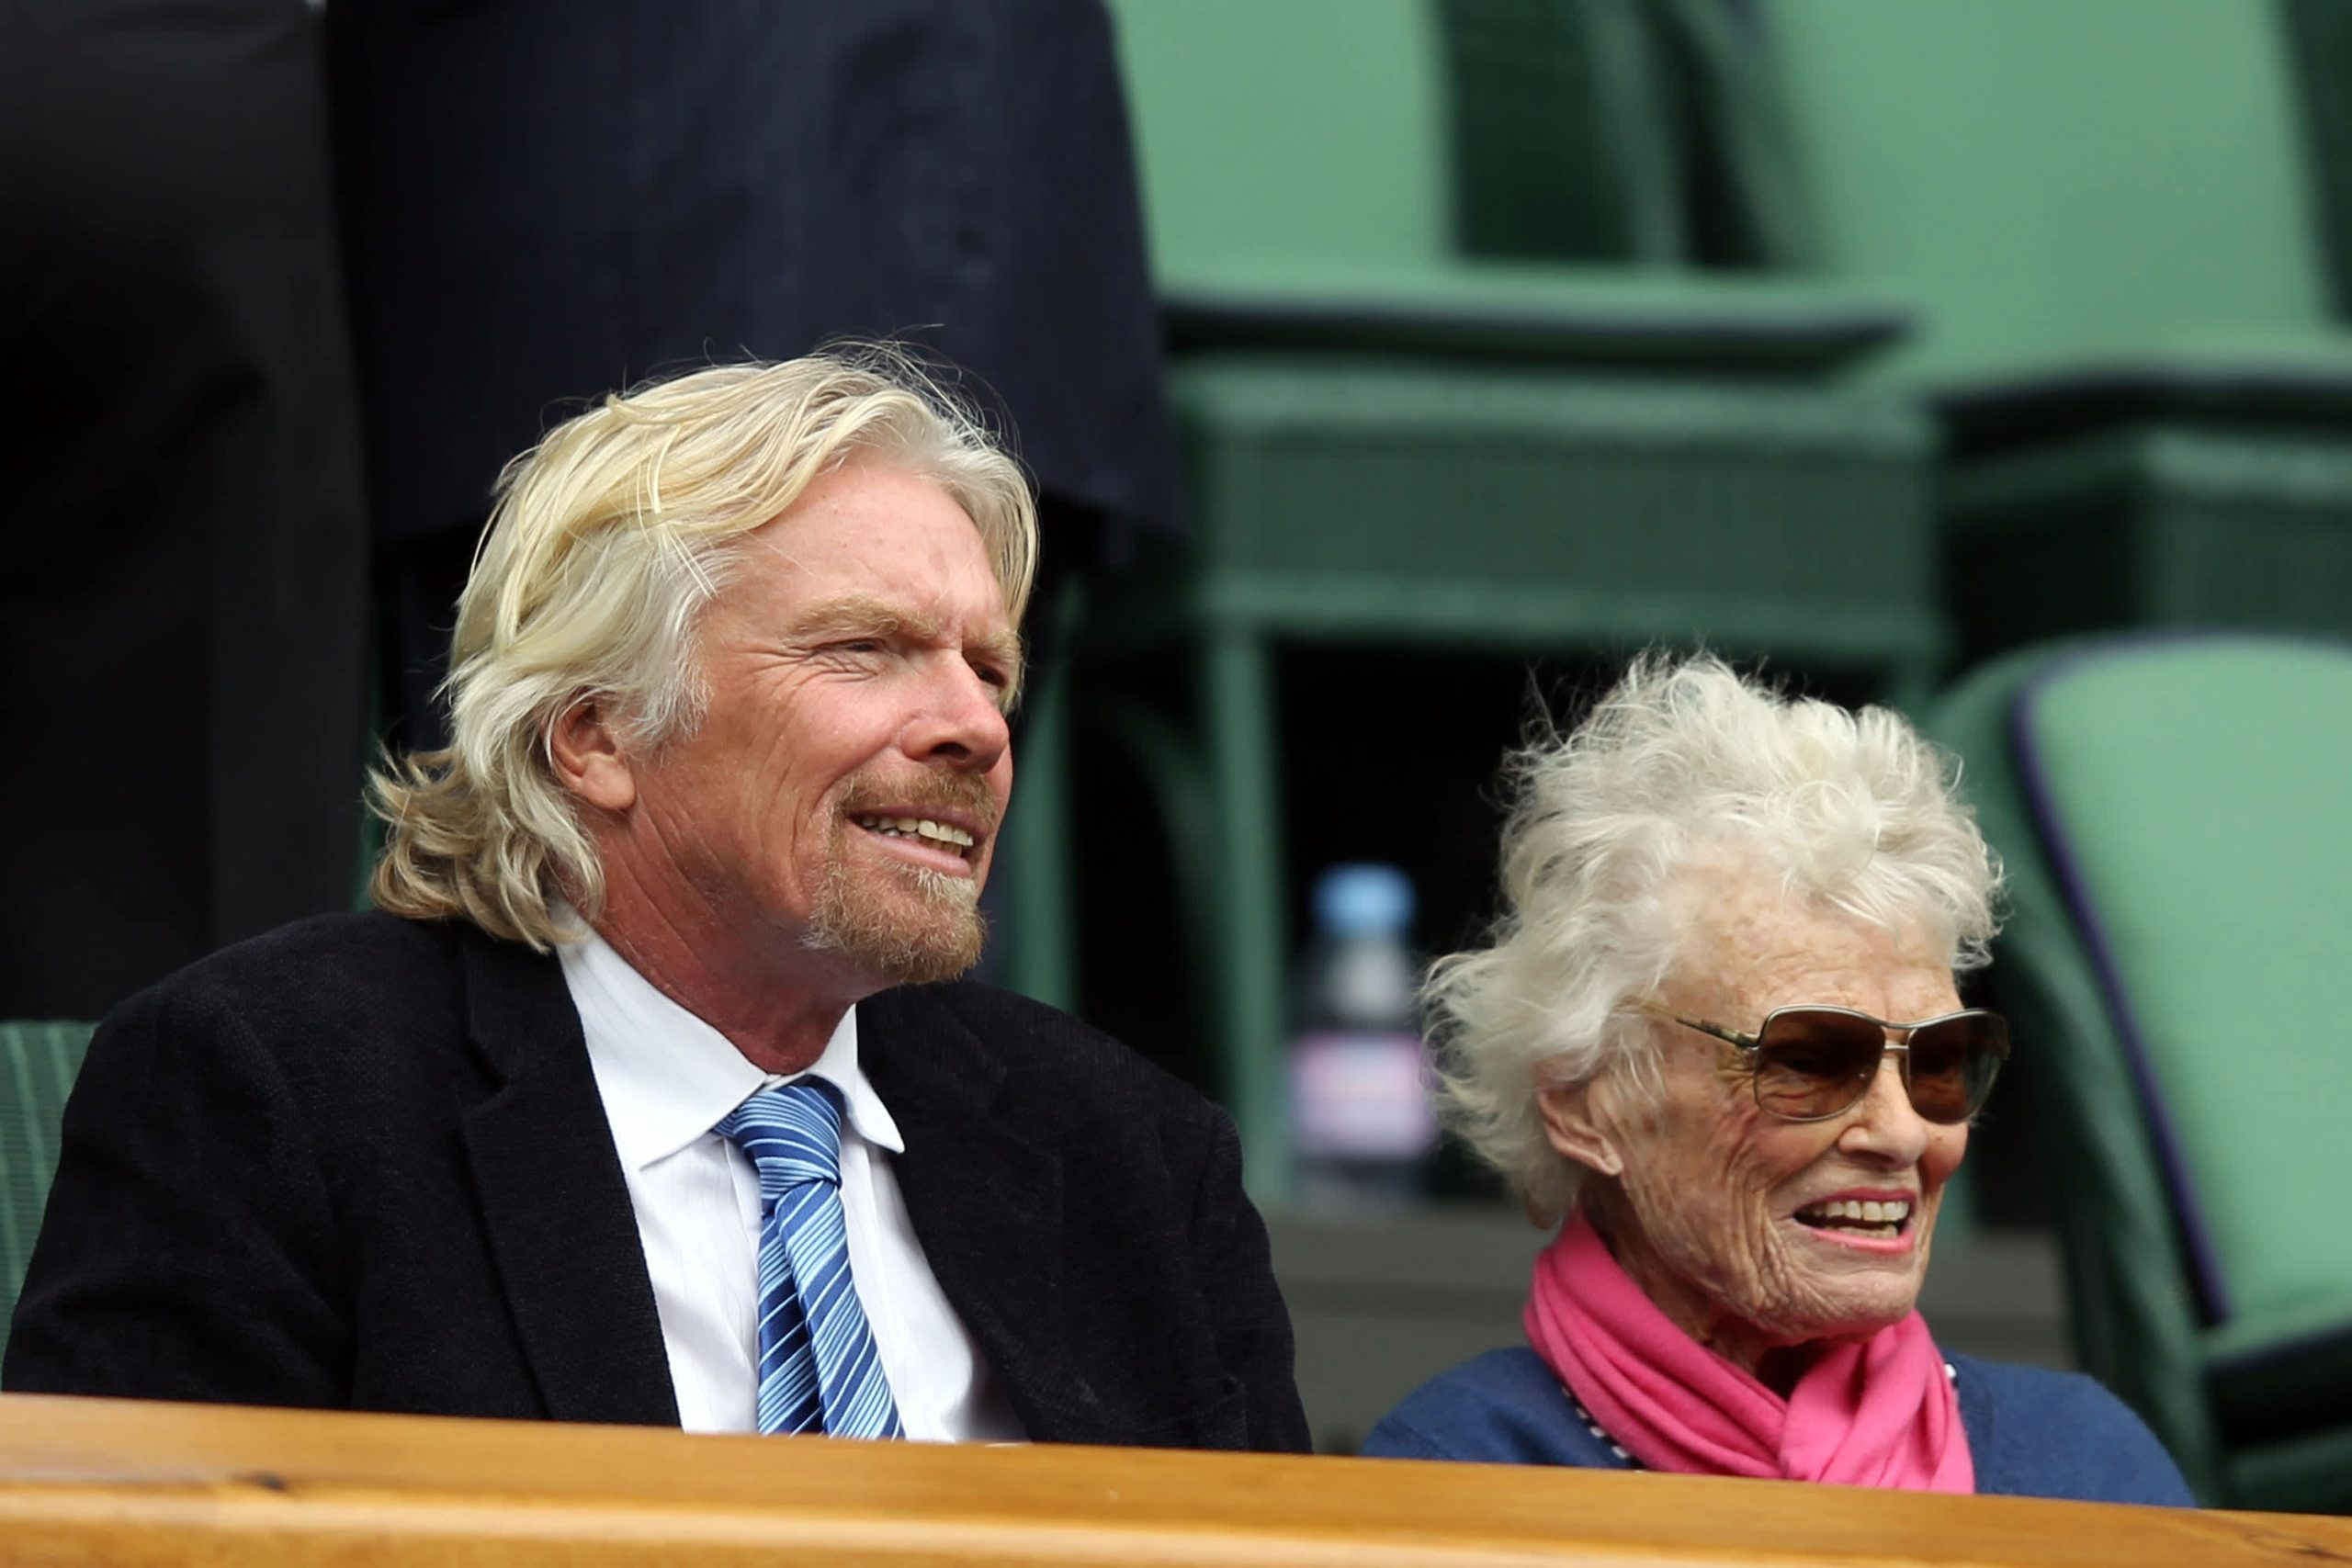 Richard Branson reveals that his mother died of Covid